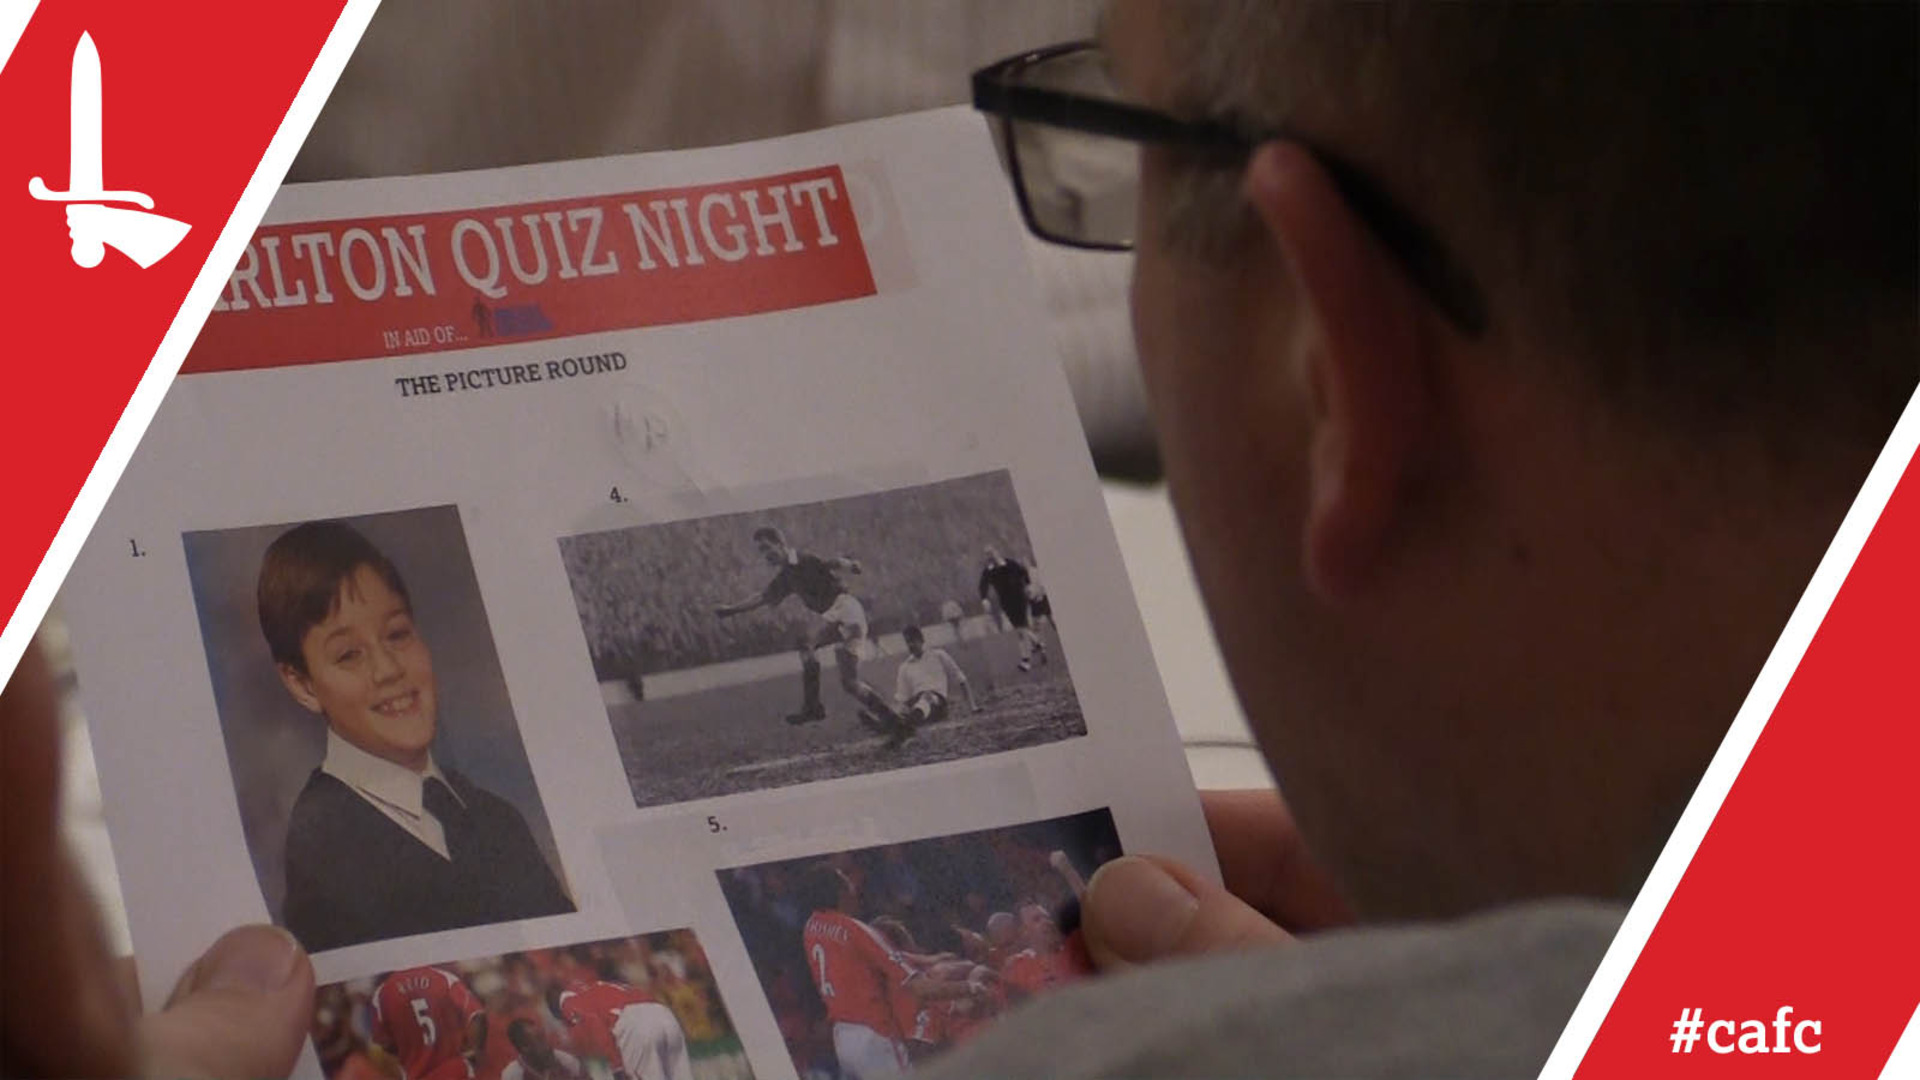 FREEVIEW | Charlton Quiz Night raises over £3,000 for Prostate Cancer UK